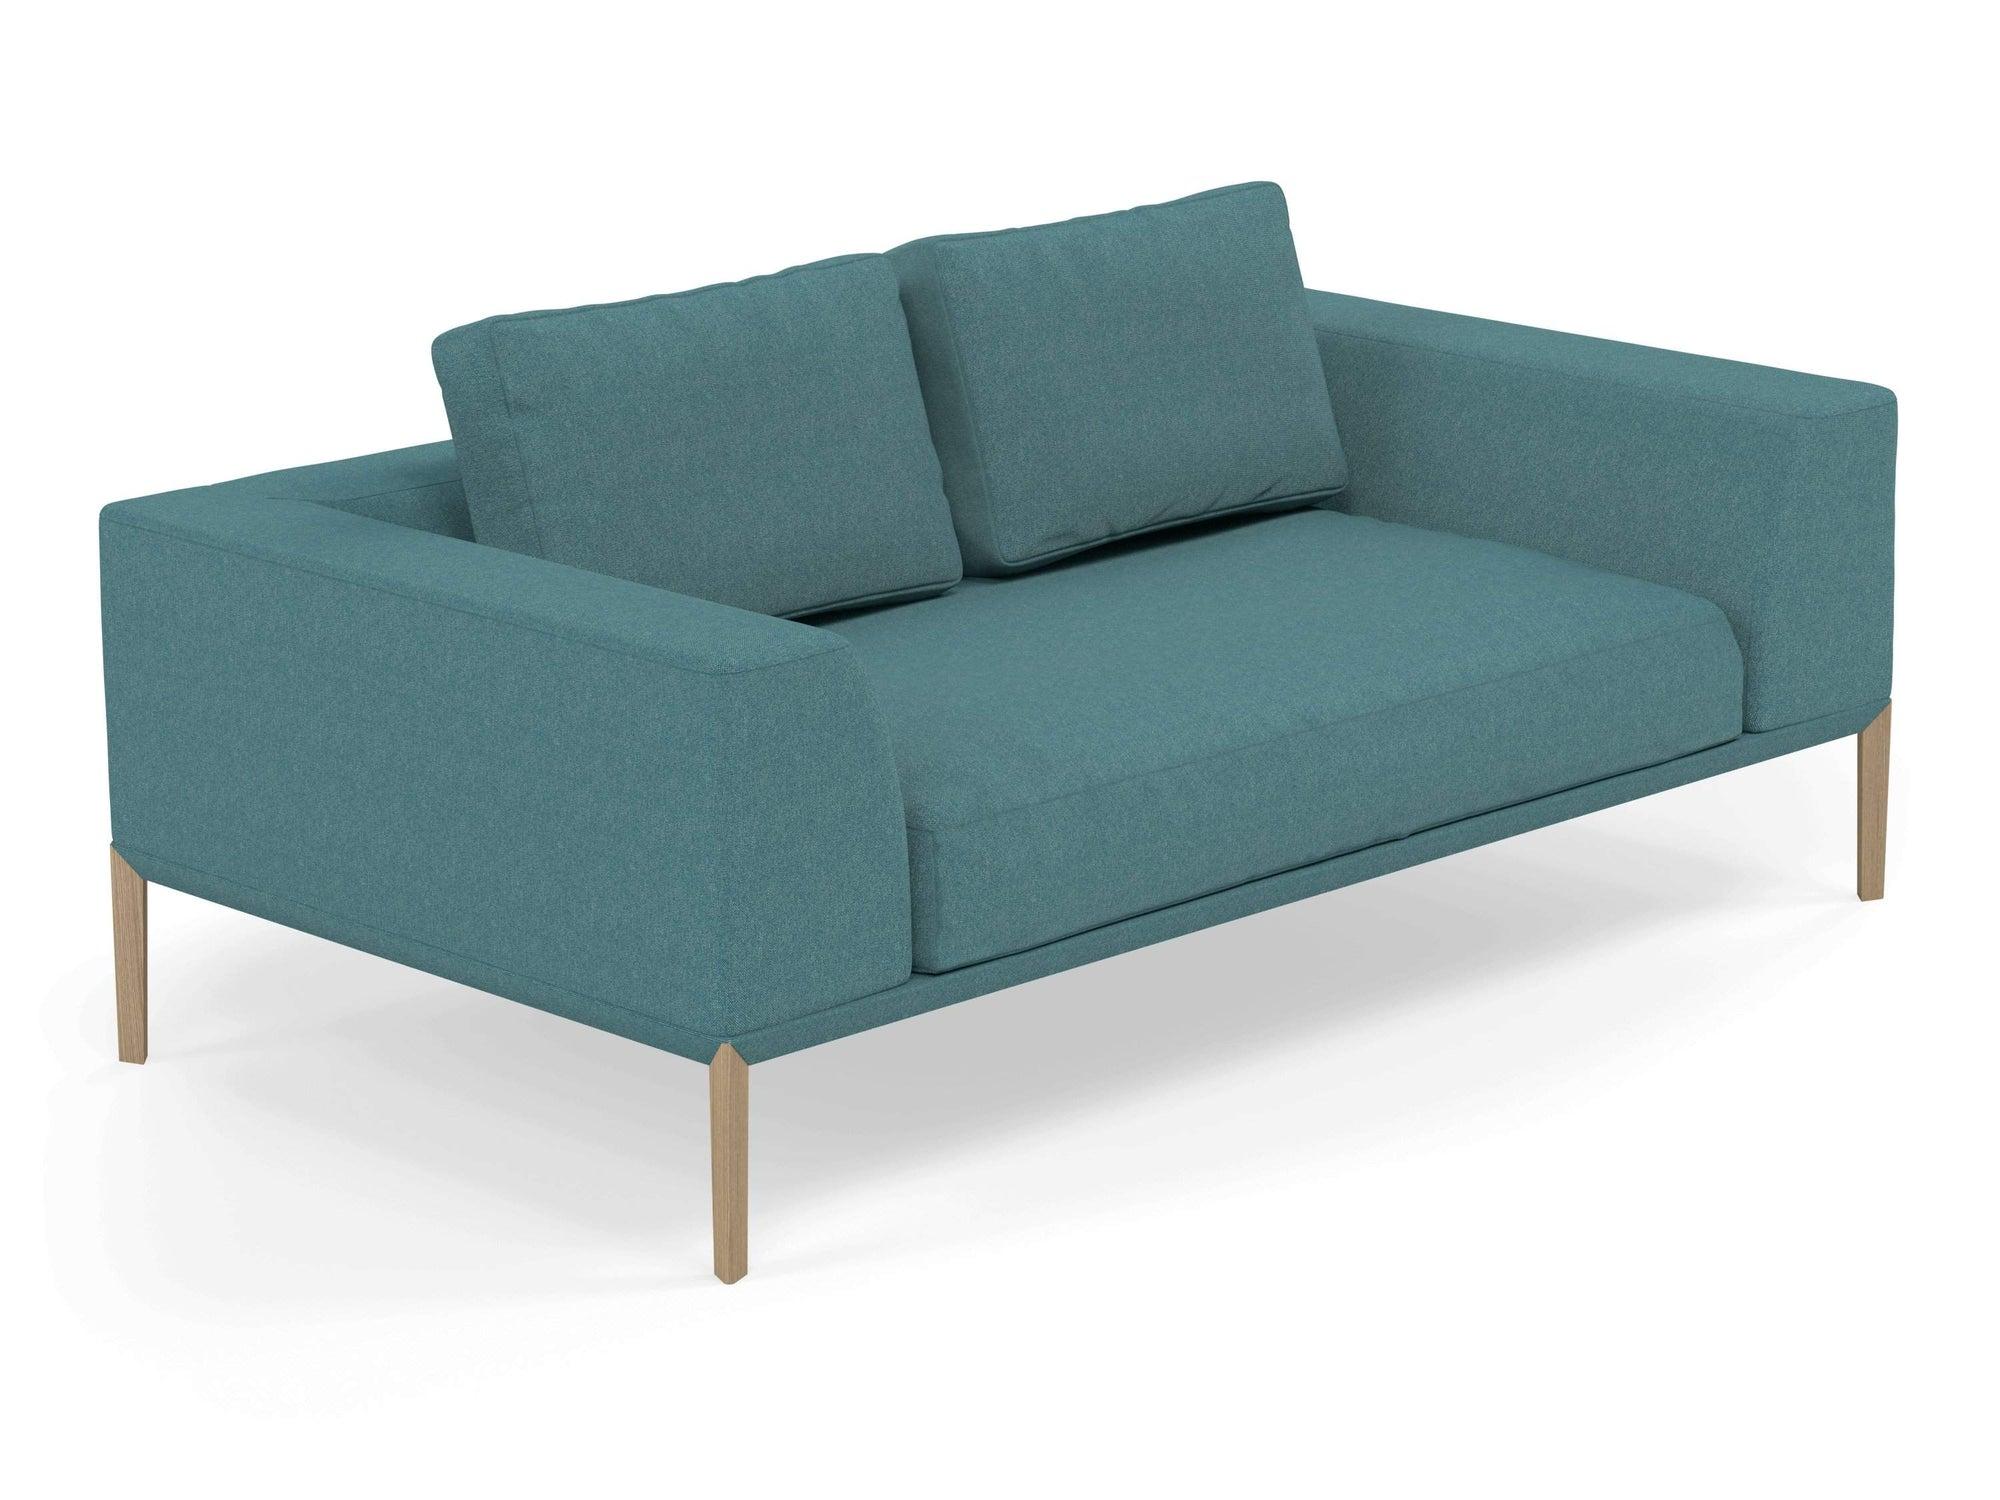 Modern 2 Seater Sofa with 2 Armrests in Teal Blue Fabric-Natural Oak-Distinct Designs (London) Ltd